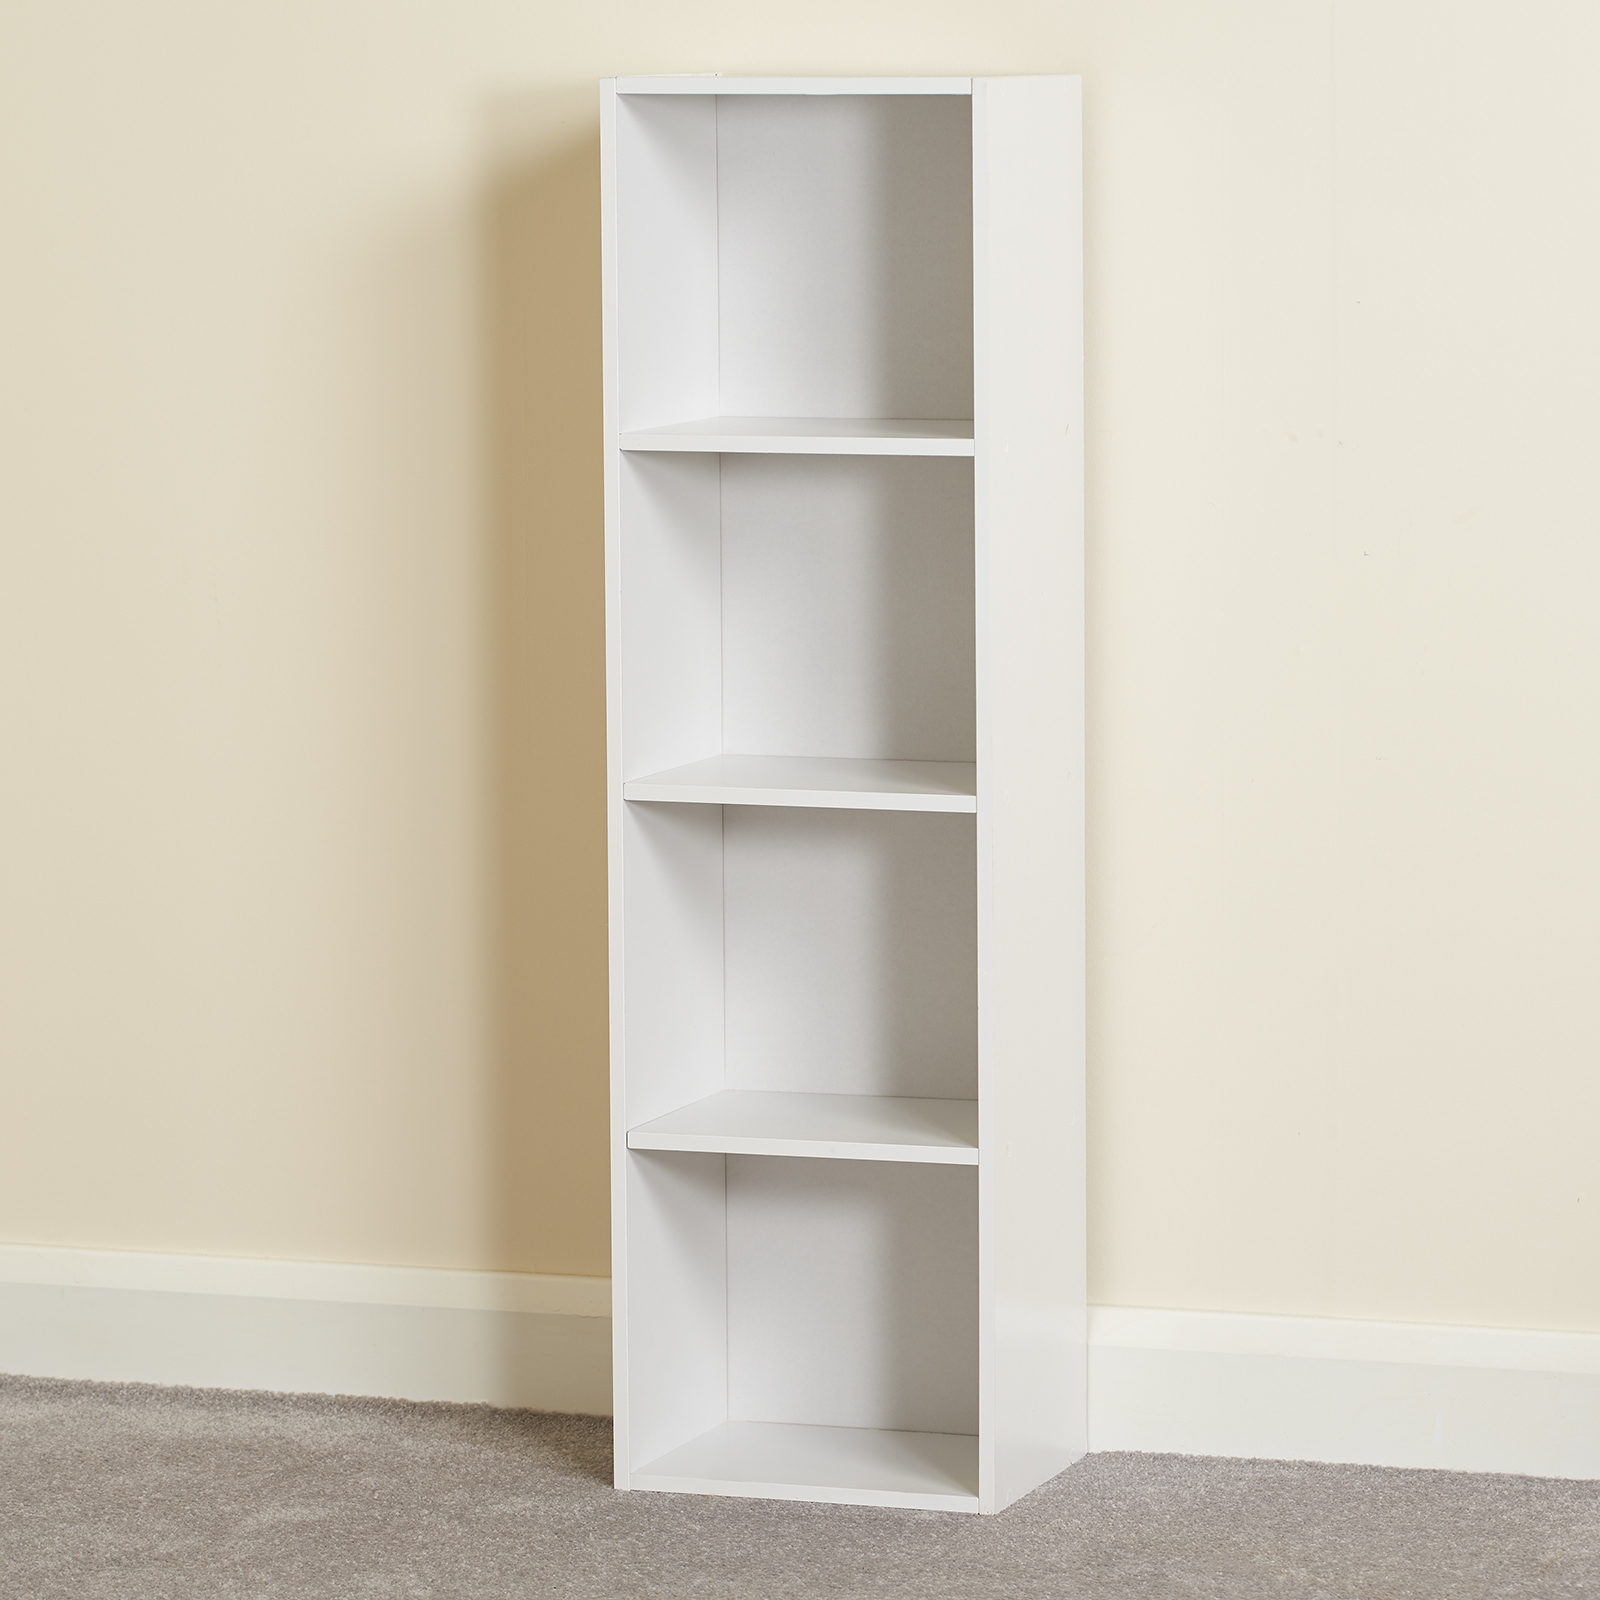 Hartleys-4-Tier-White-Bookcase-Wooden-Display-Shelving-Unit-amp-Fabric-Storage-Box thumbnail 42